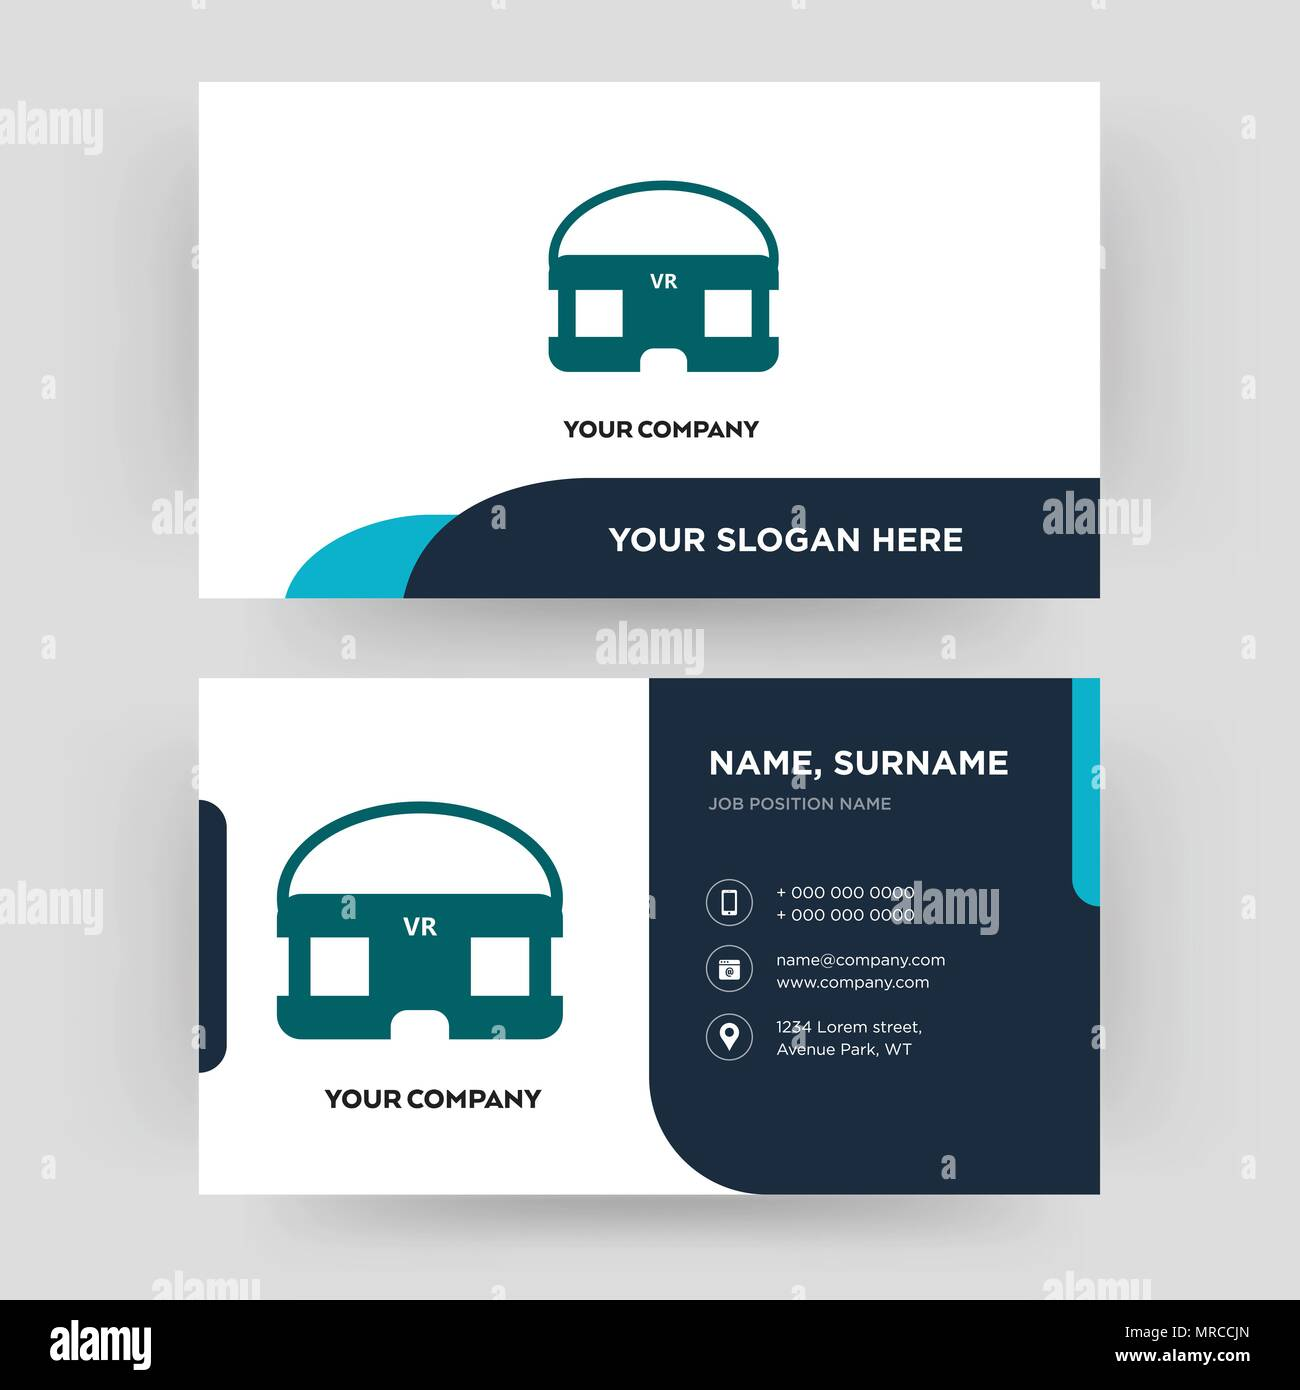 vr headset, business card design template, visiting for your company